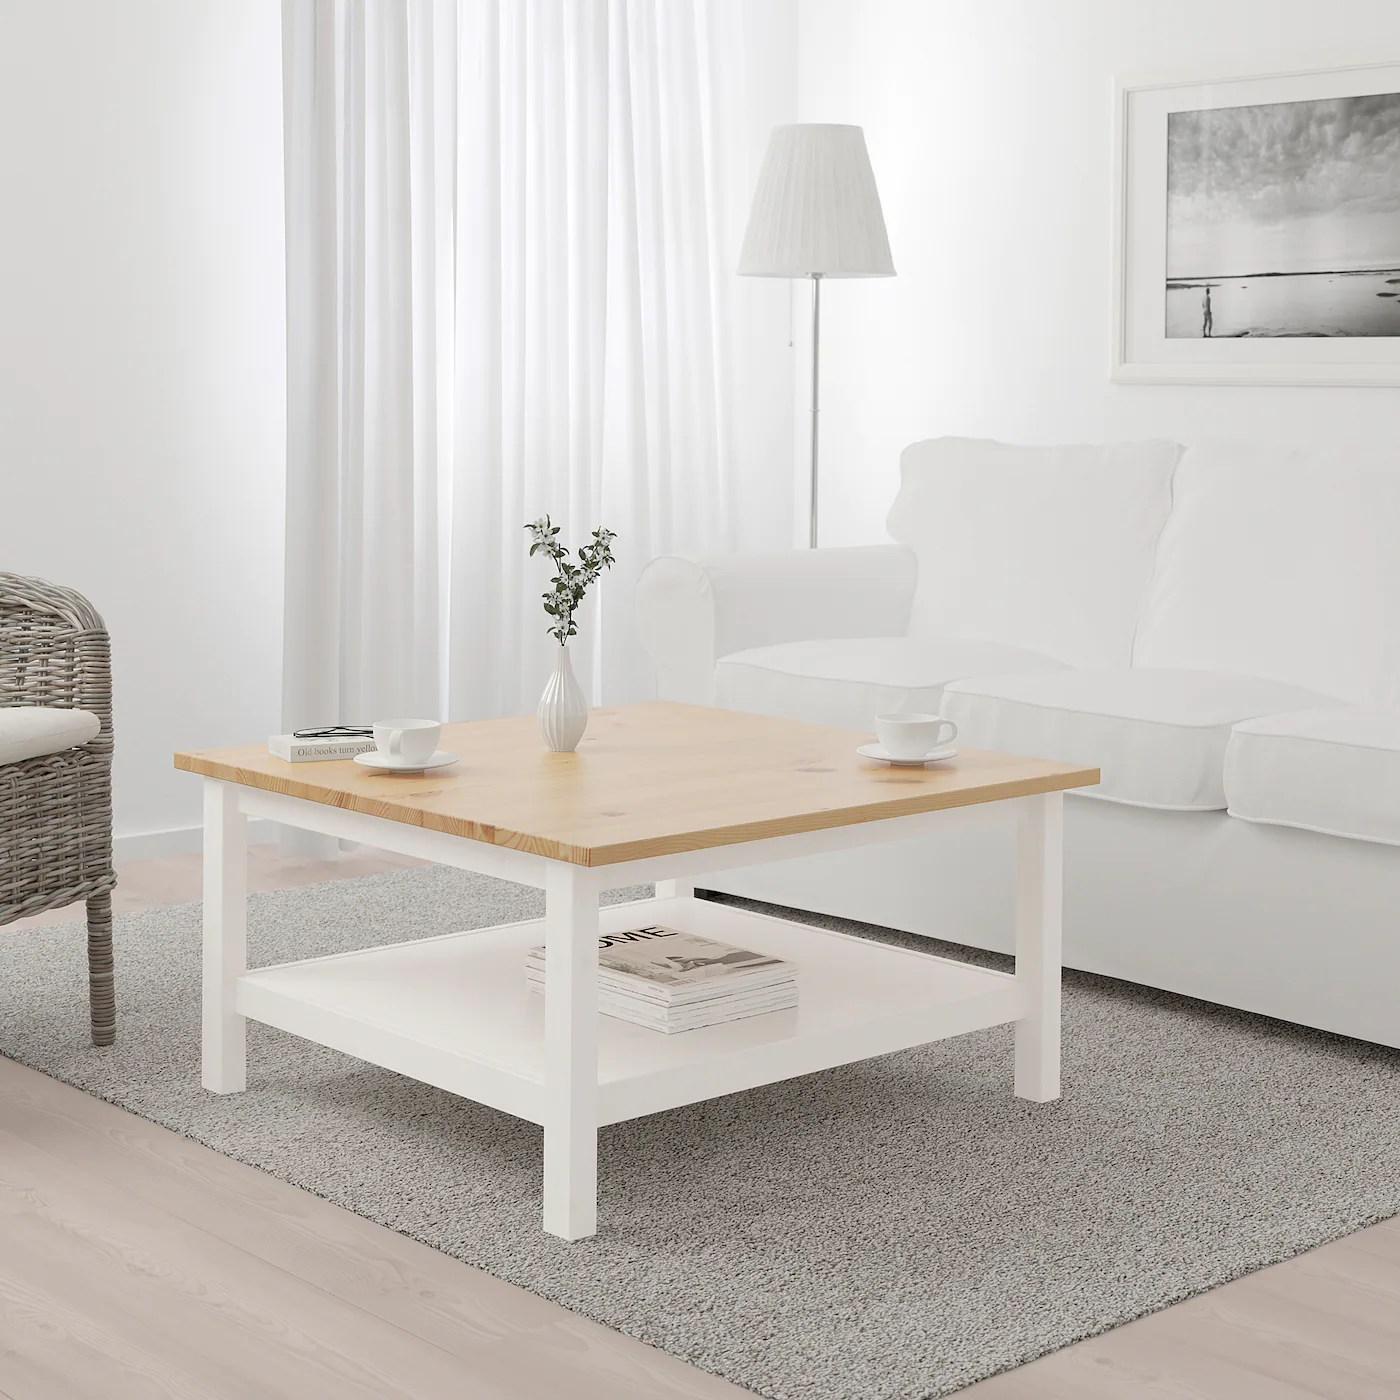 Hemnes Coffee Table White Stain Light Brown 35 3 8x35 3 8